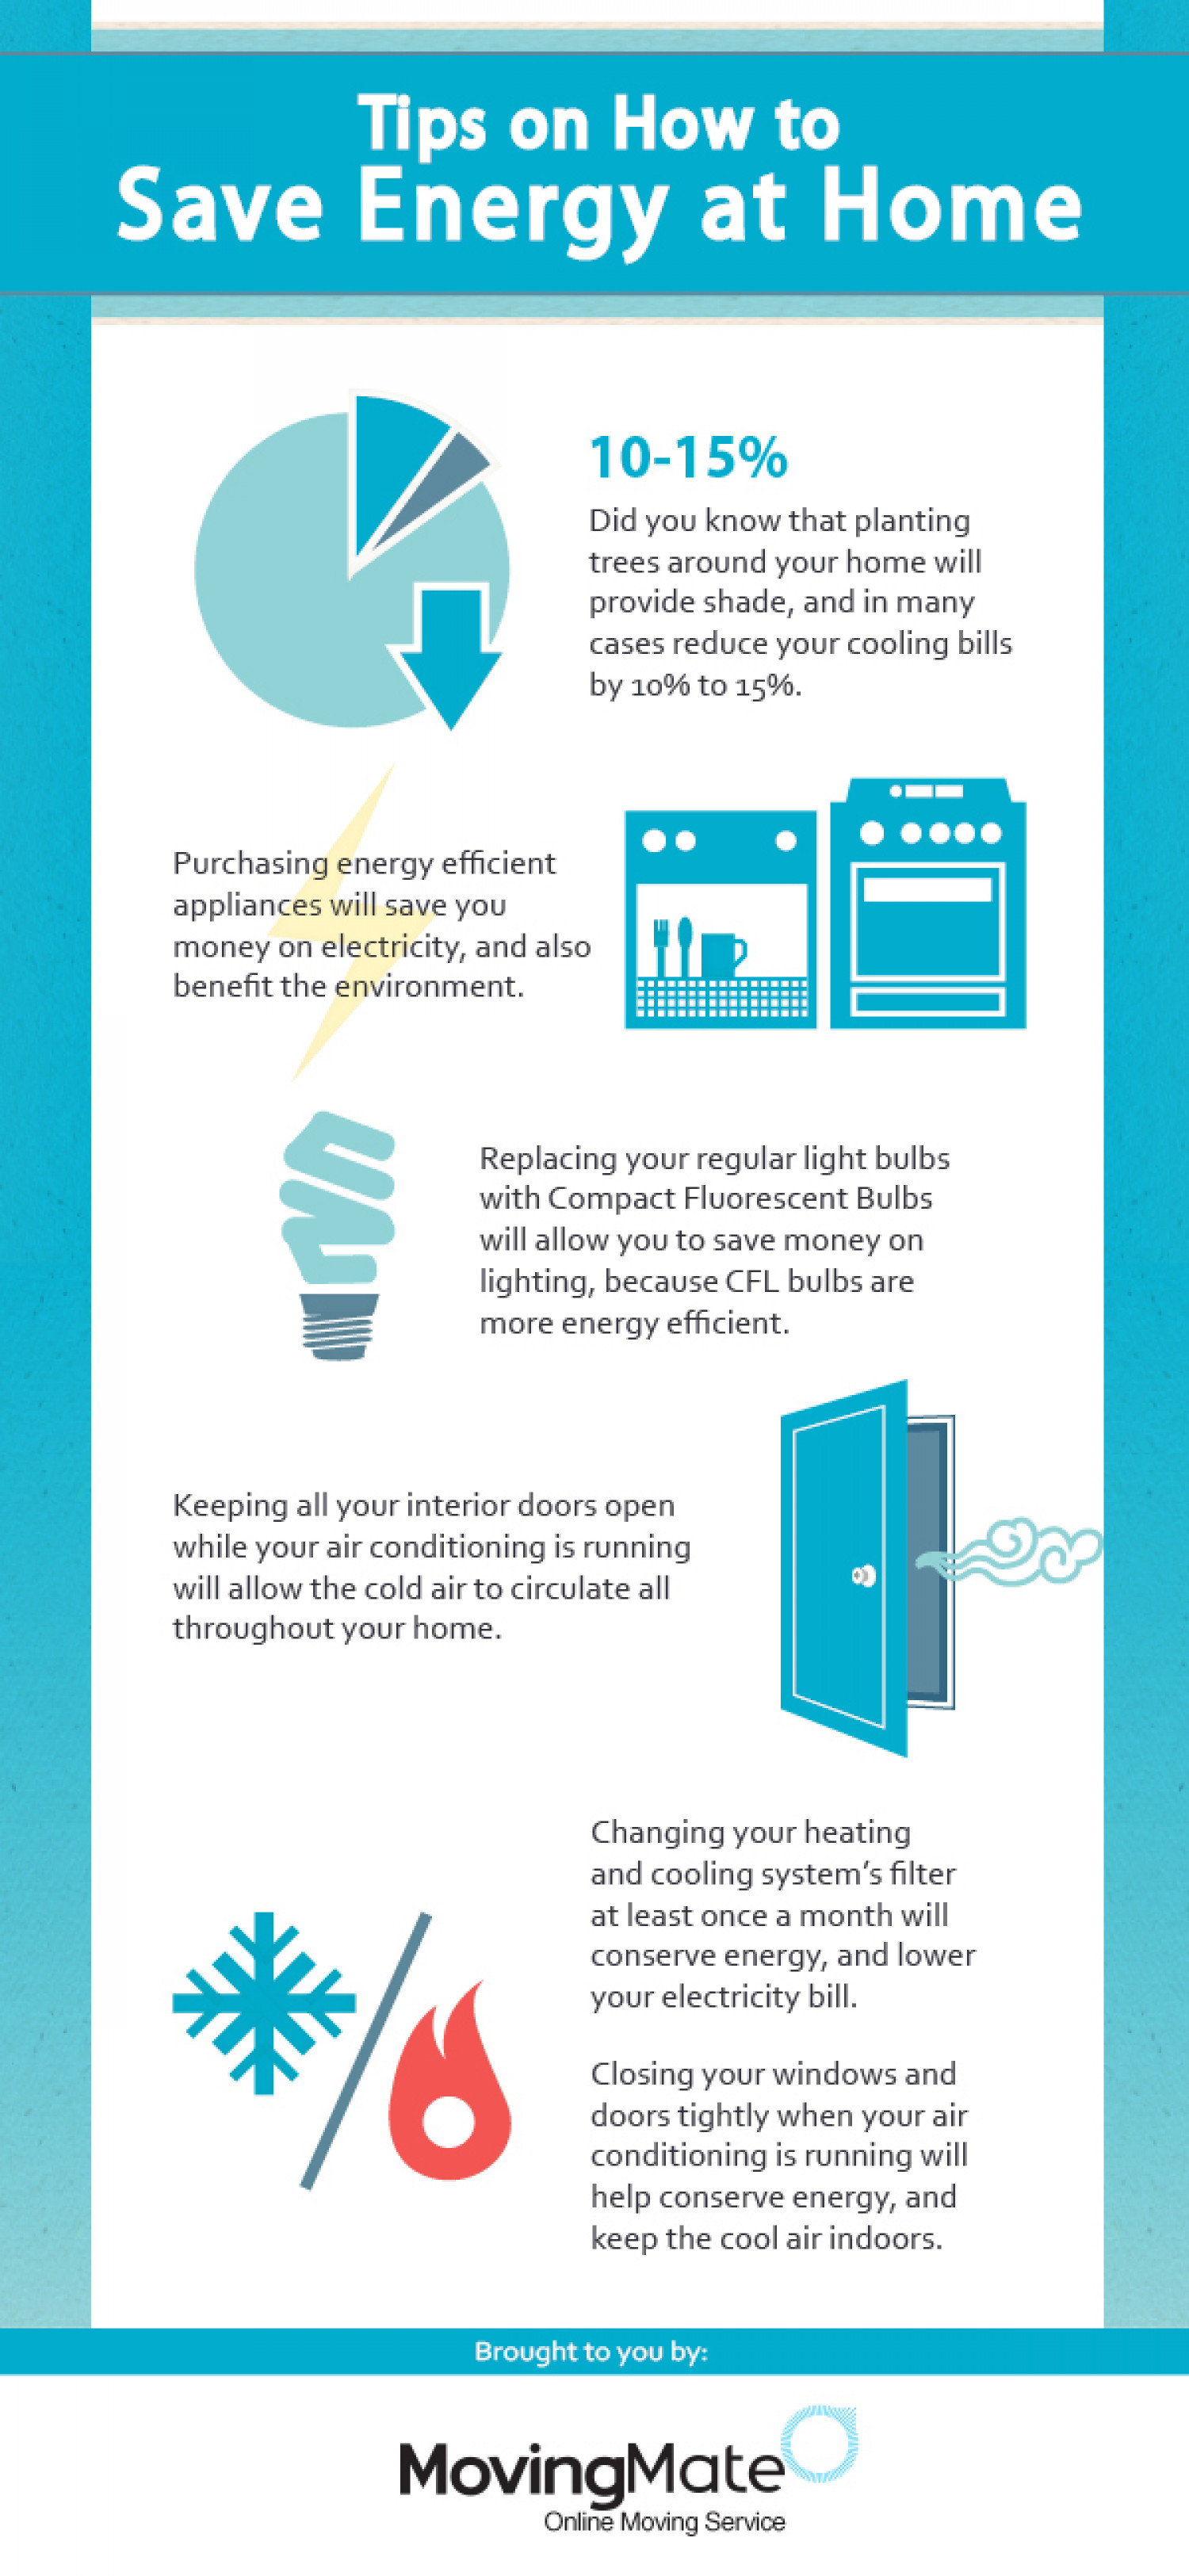 Tips on How to Save Energy at Home